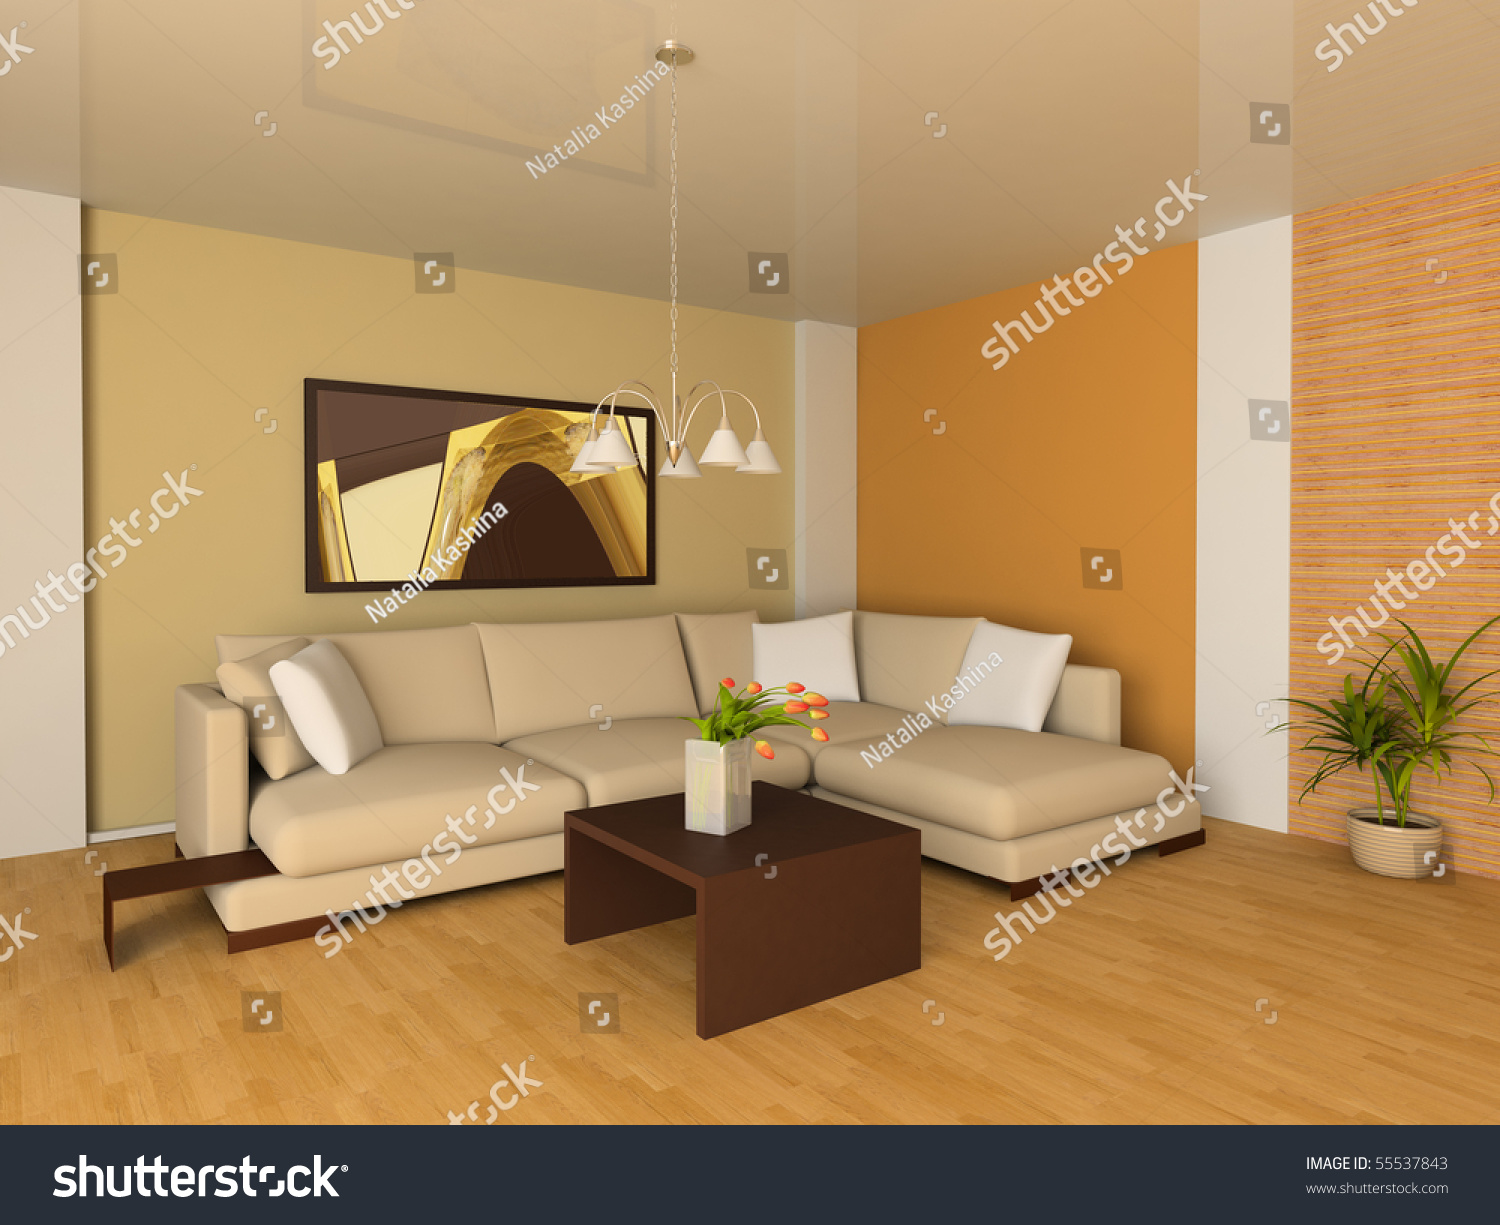 Sofa drawing room 3d image stock illustration 55537843 for 3d bedroom drawing